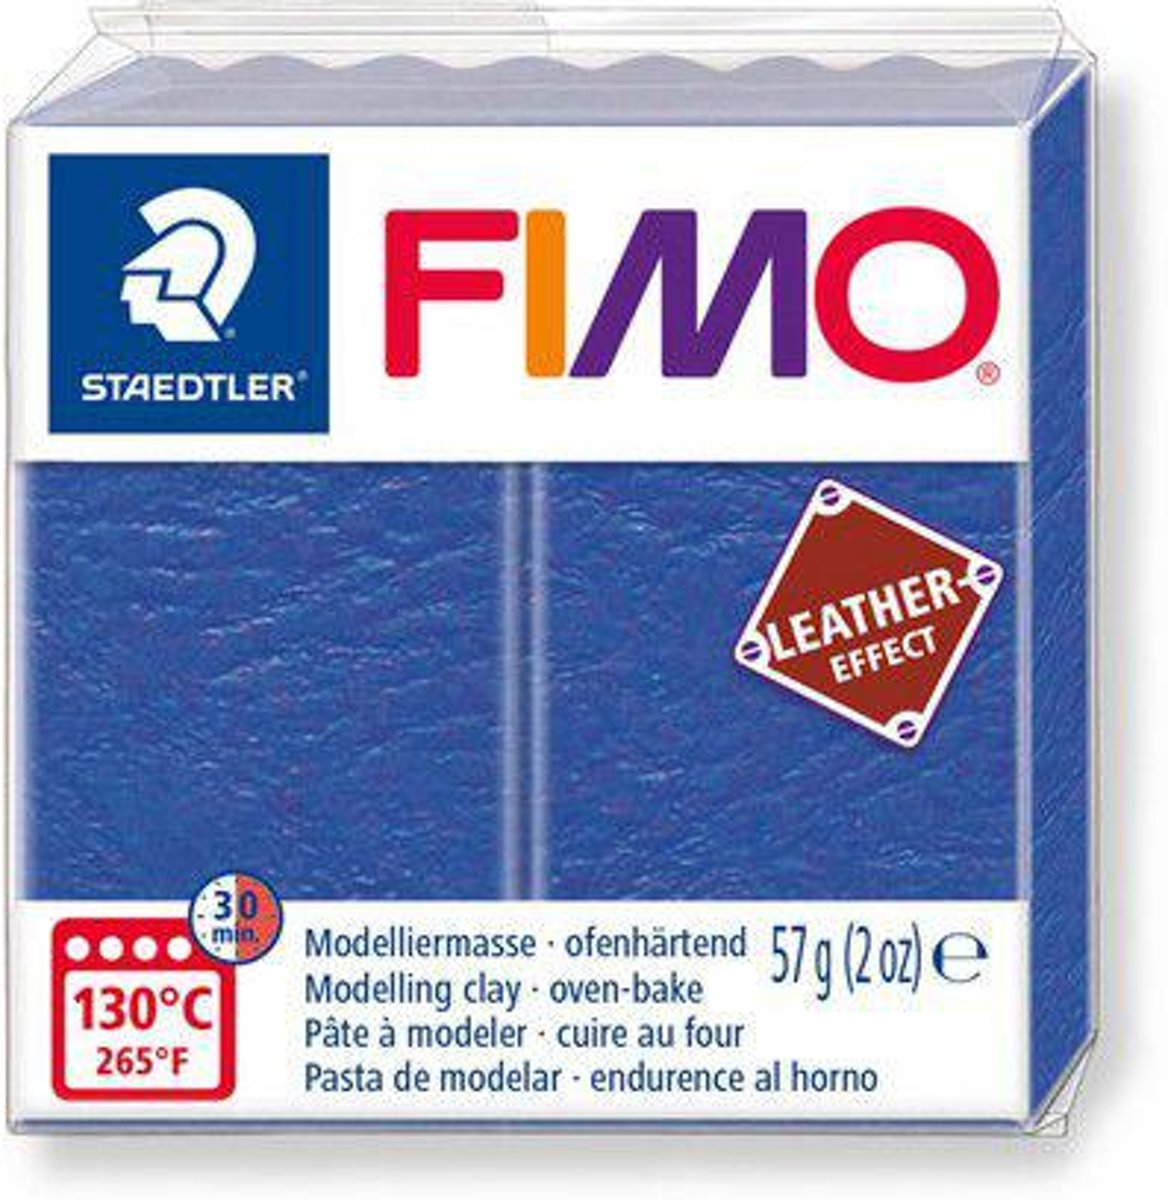 Fimo Effect leather 57 g indigo 8010-309